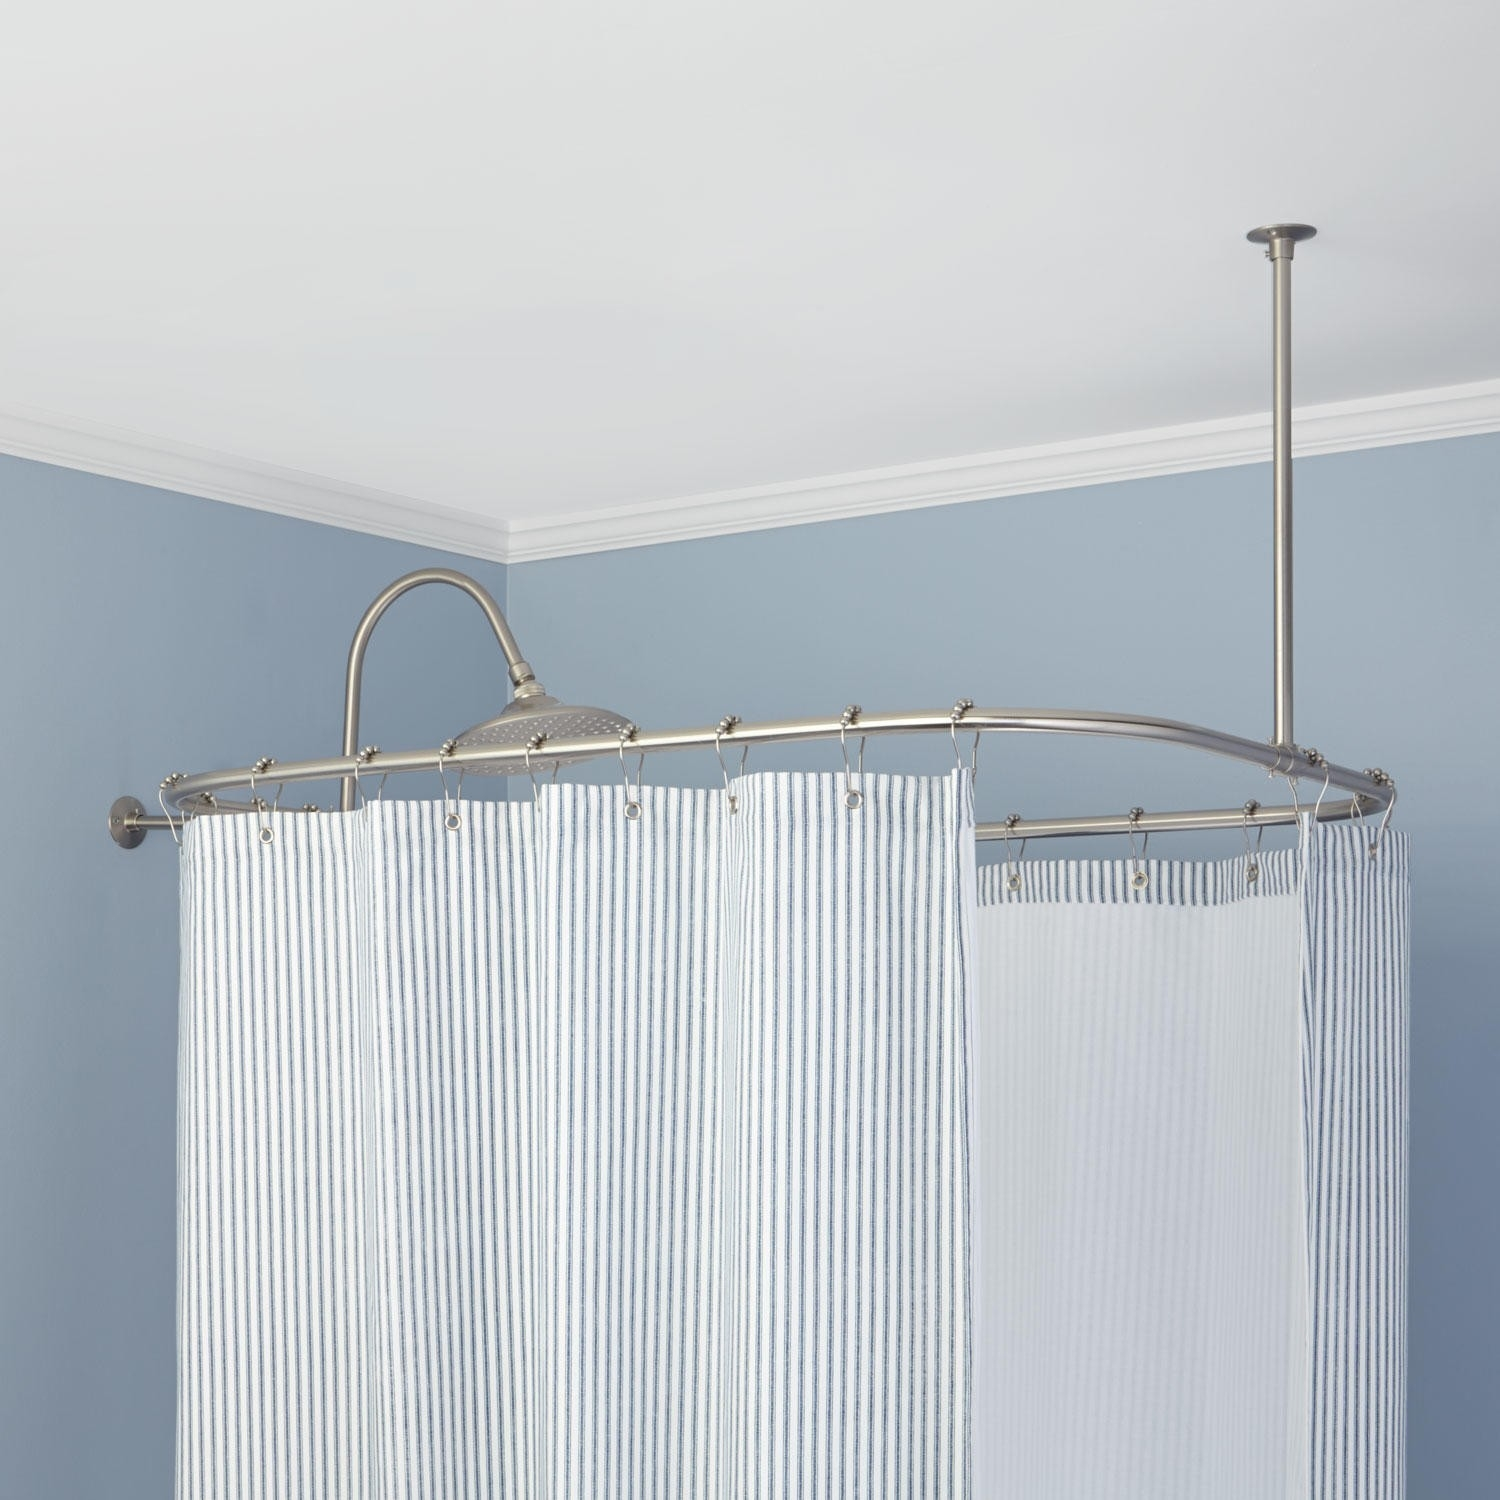 Curtain Odd Shaped Shower Curtain Rods With Odd Shower Curtains (Image 12 of 25)